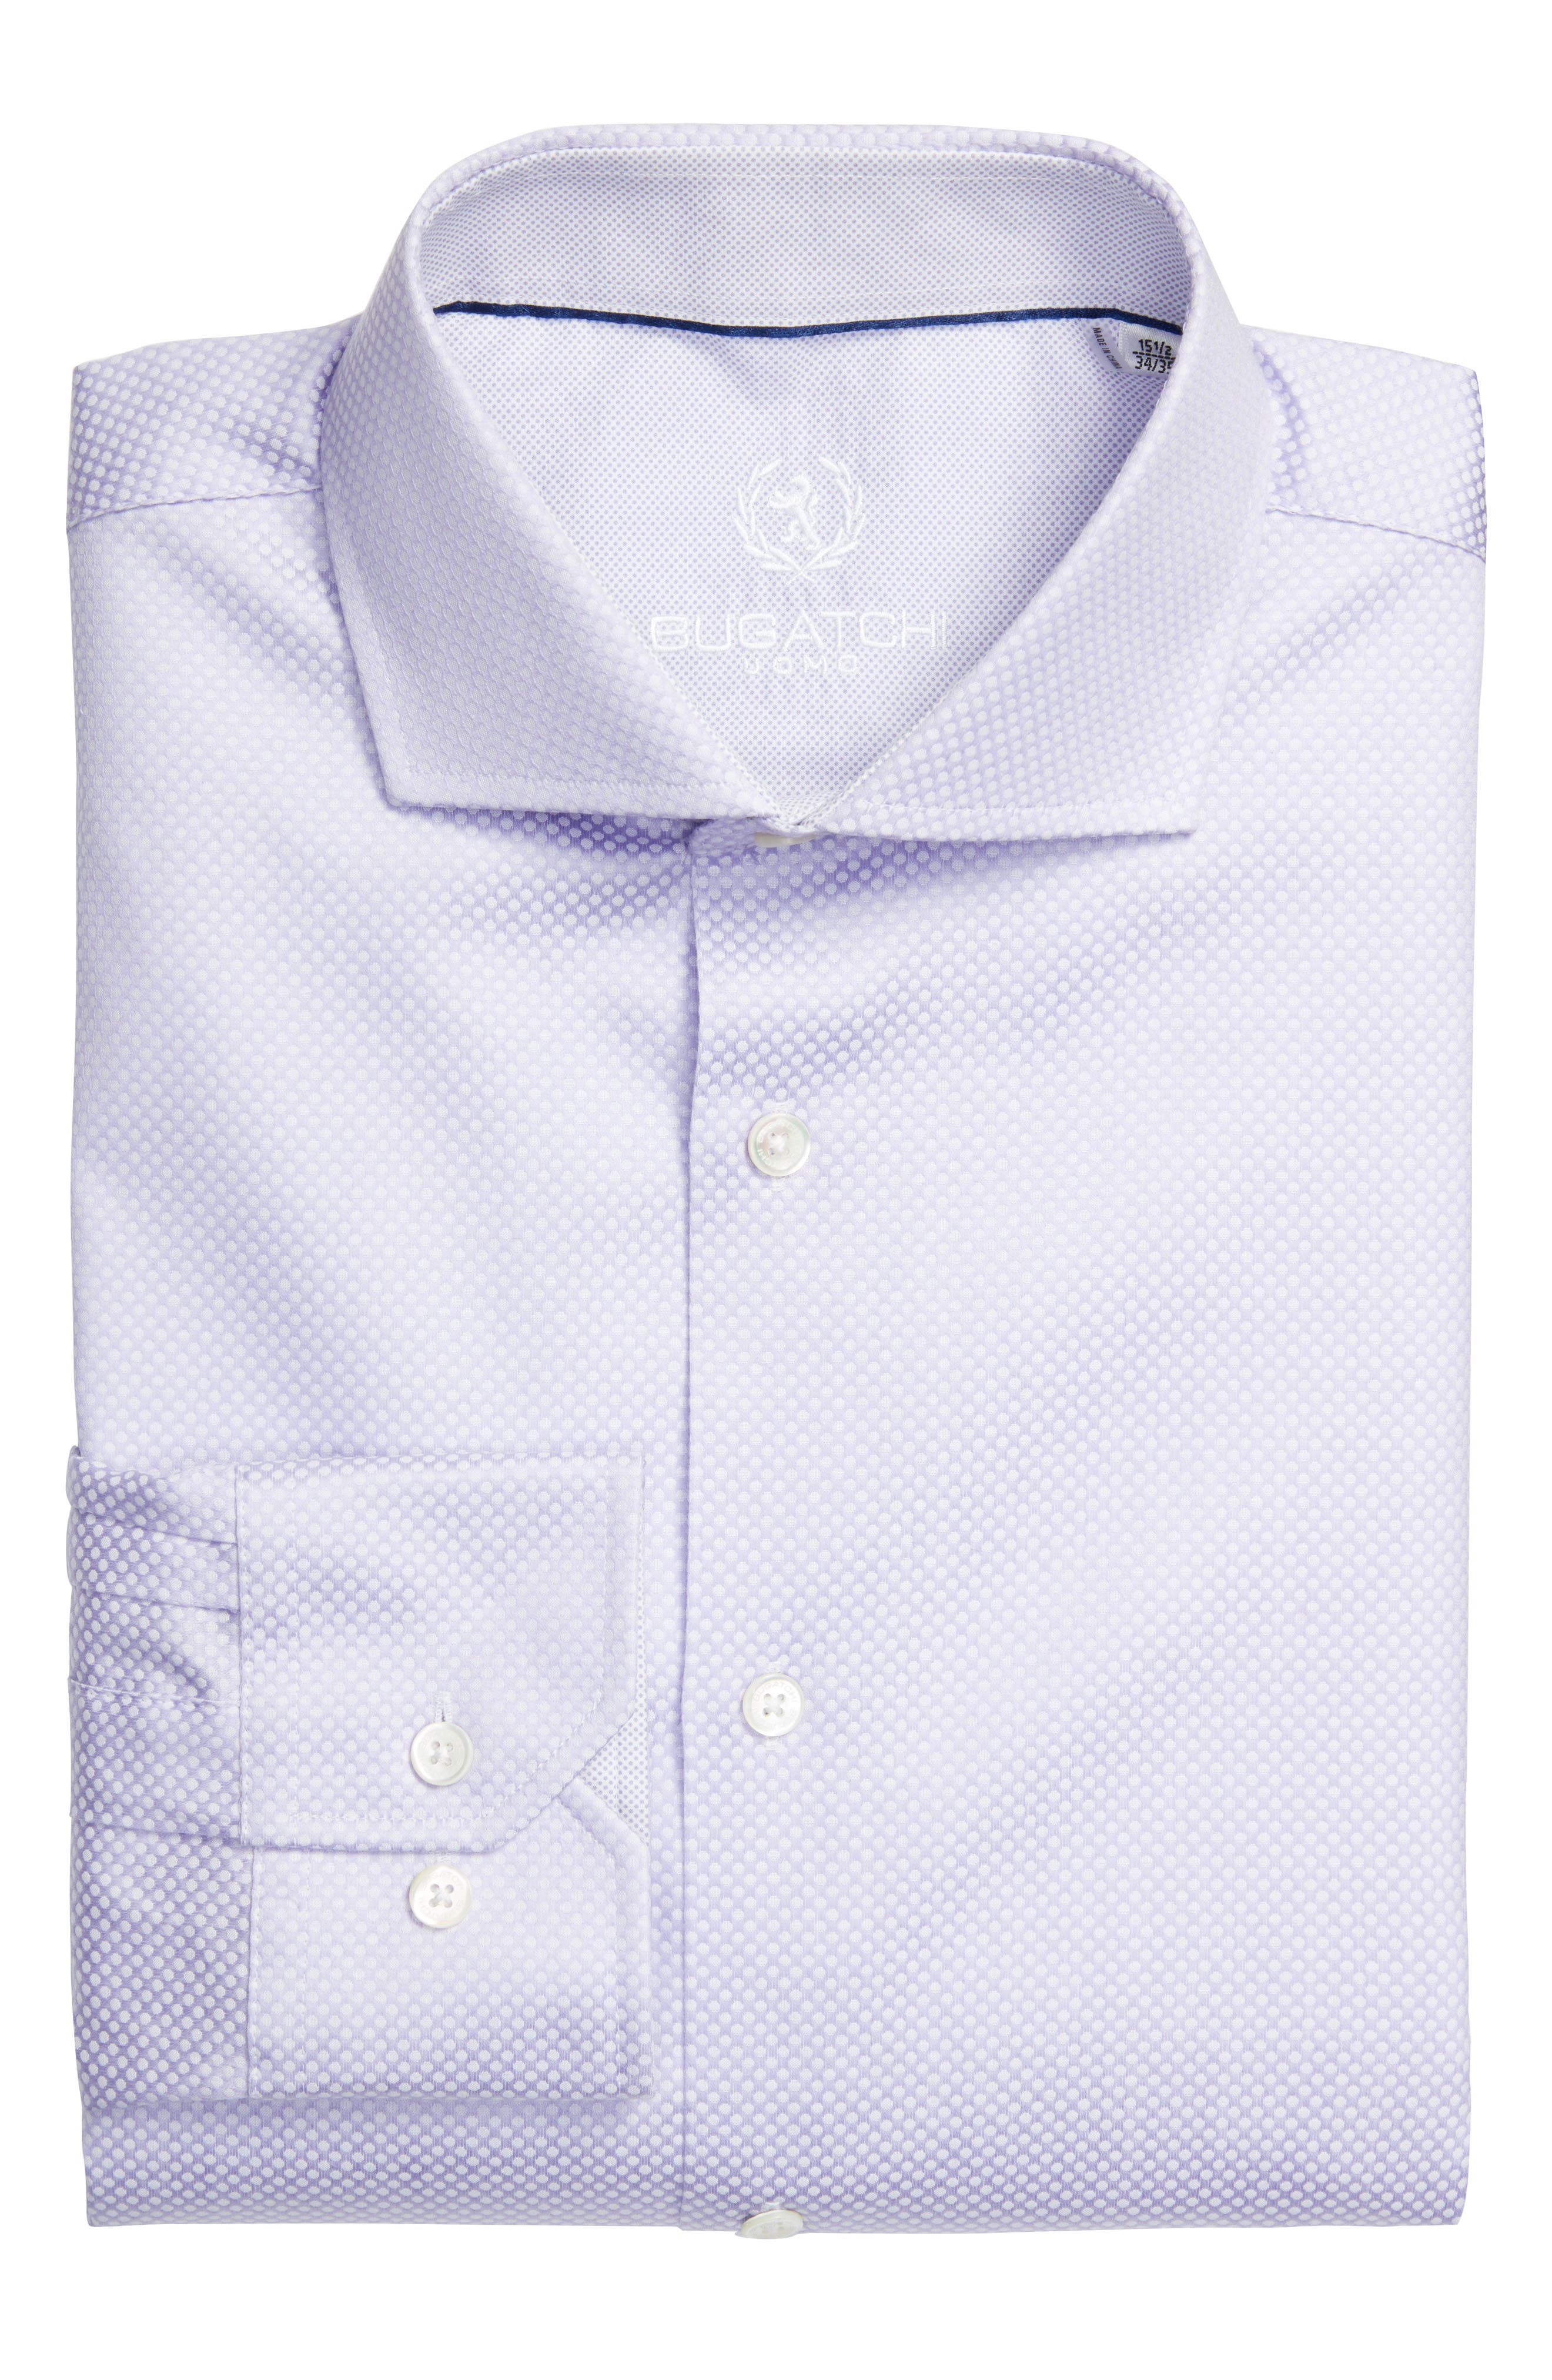 Alternate Image 1 Selected - Bugatchi Trim Fit Dot Jacquard Dress Shirt